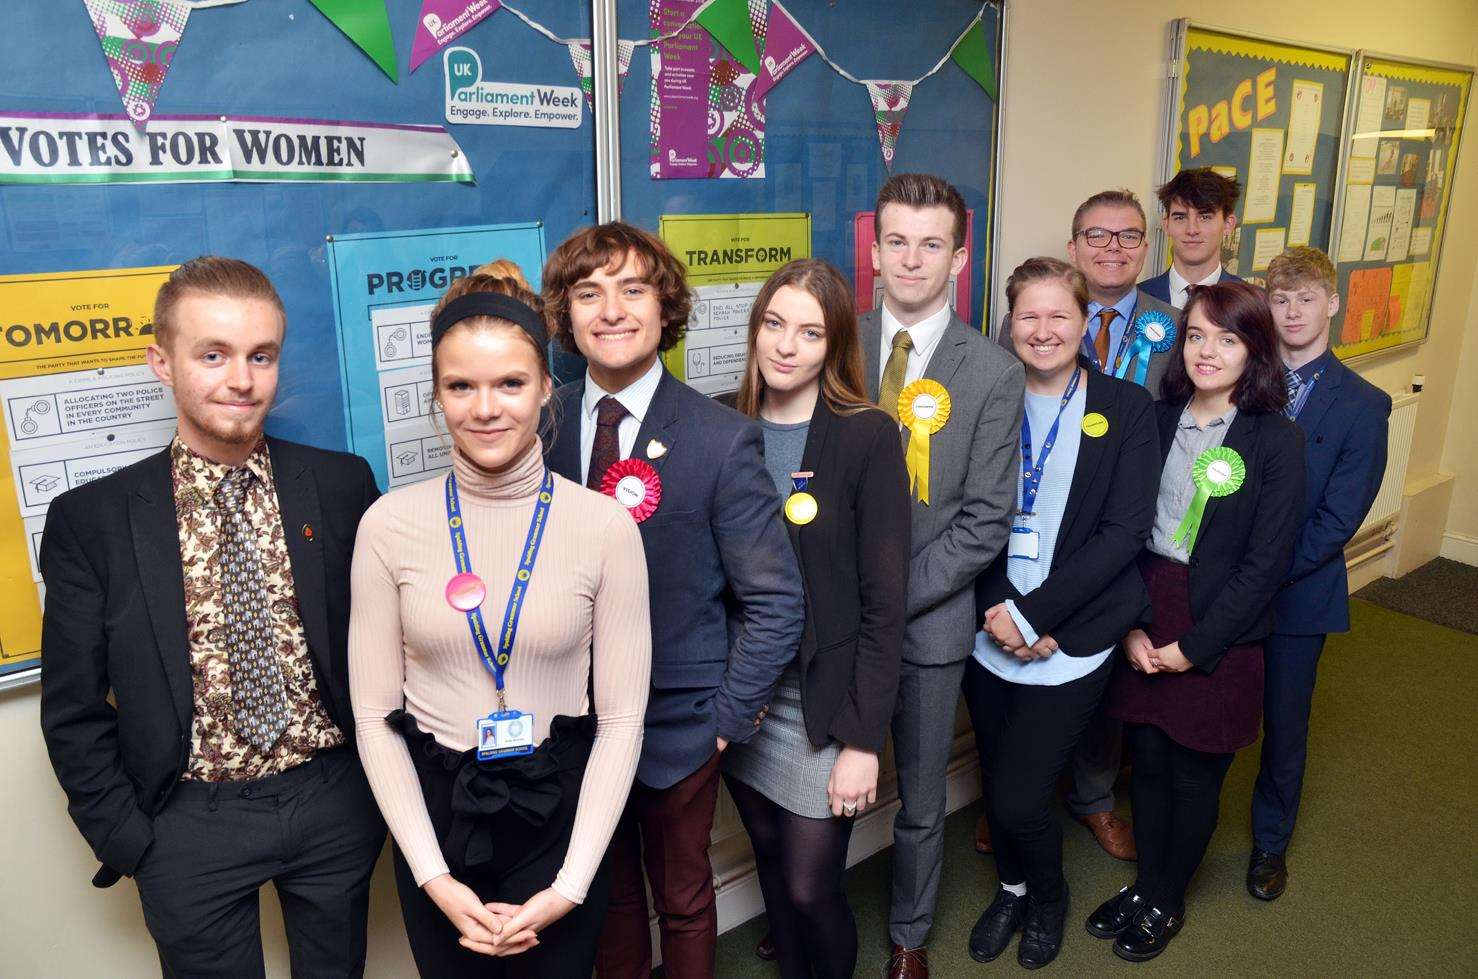 Party leaders and supporters Joe Seth, Anete Murniece, William Hayes, Becca Long, Harry Padoan, Hannah Catterall, Franklin Stokes, Neave Shaw, Joe Gill and Jack Braginton